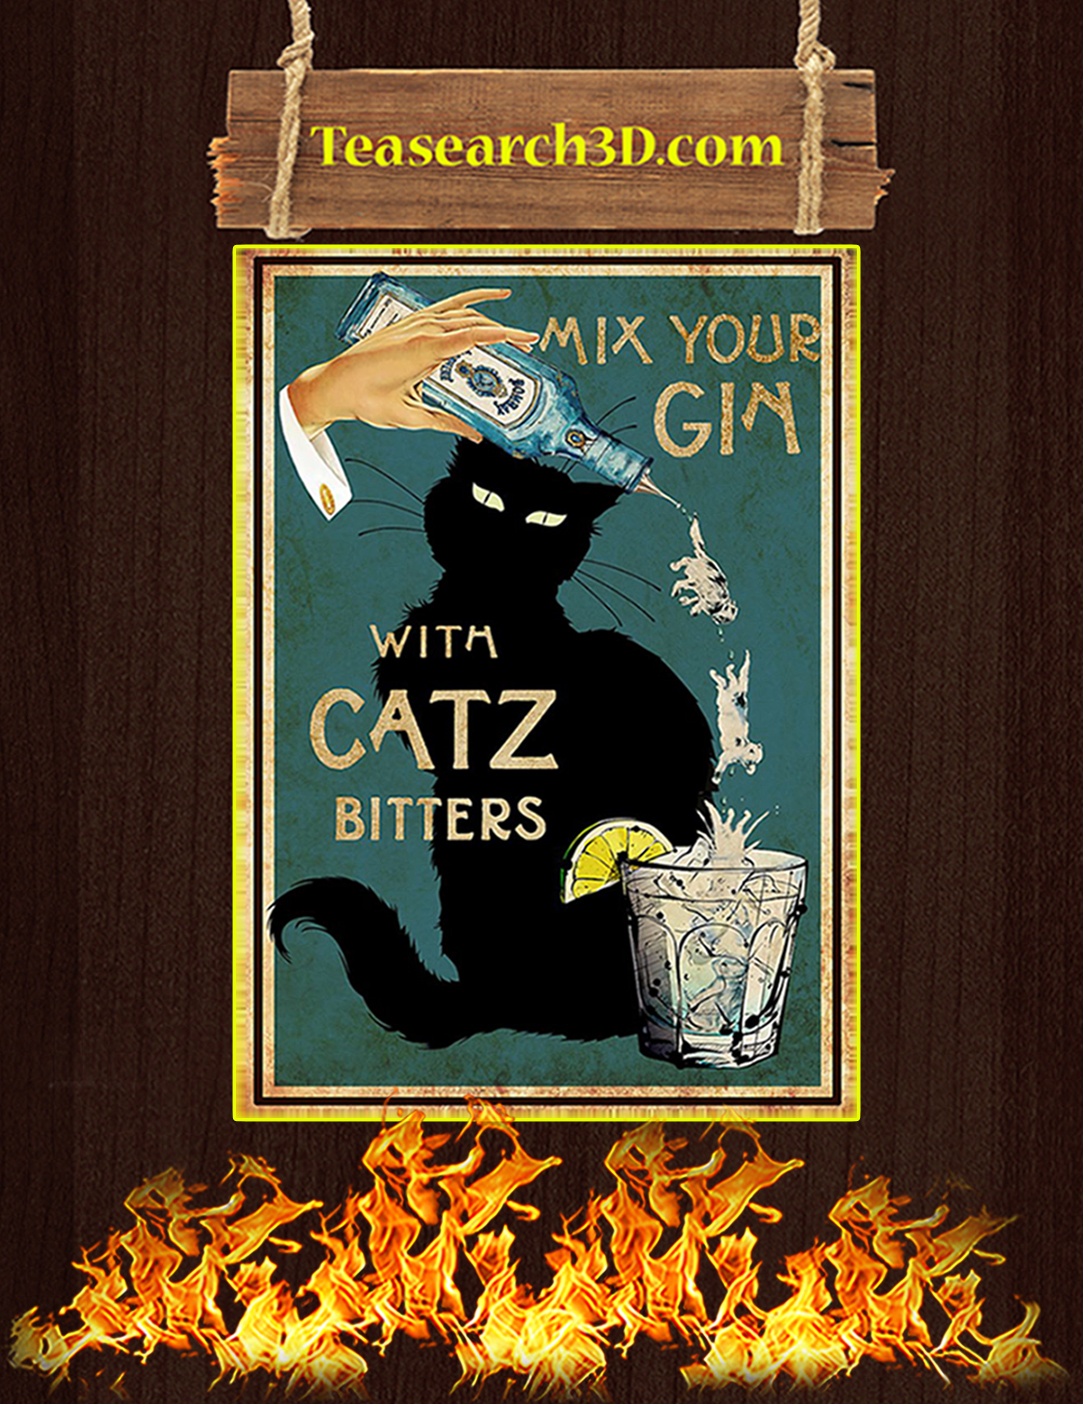 Liquor Mix your gin with catz bitters poster A2